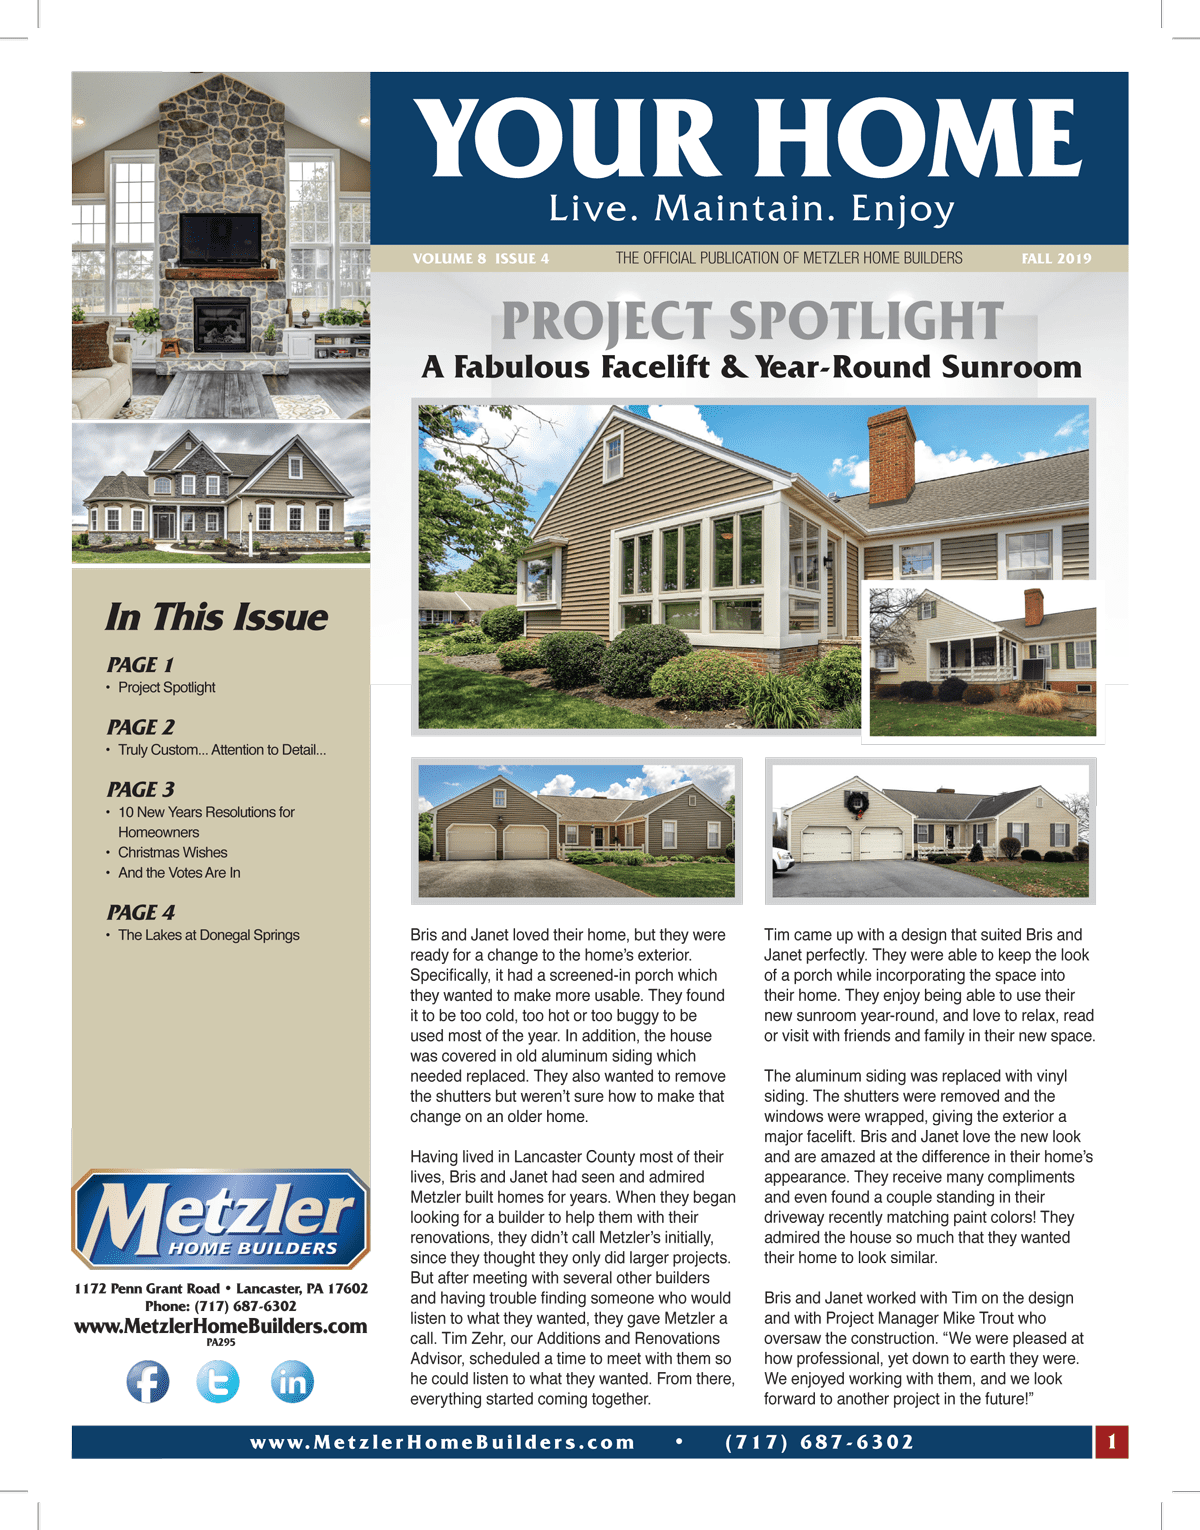 Metzler 'Your Home' Newsletter PDF cover for Volume 8 Issue 4